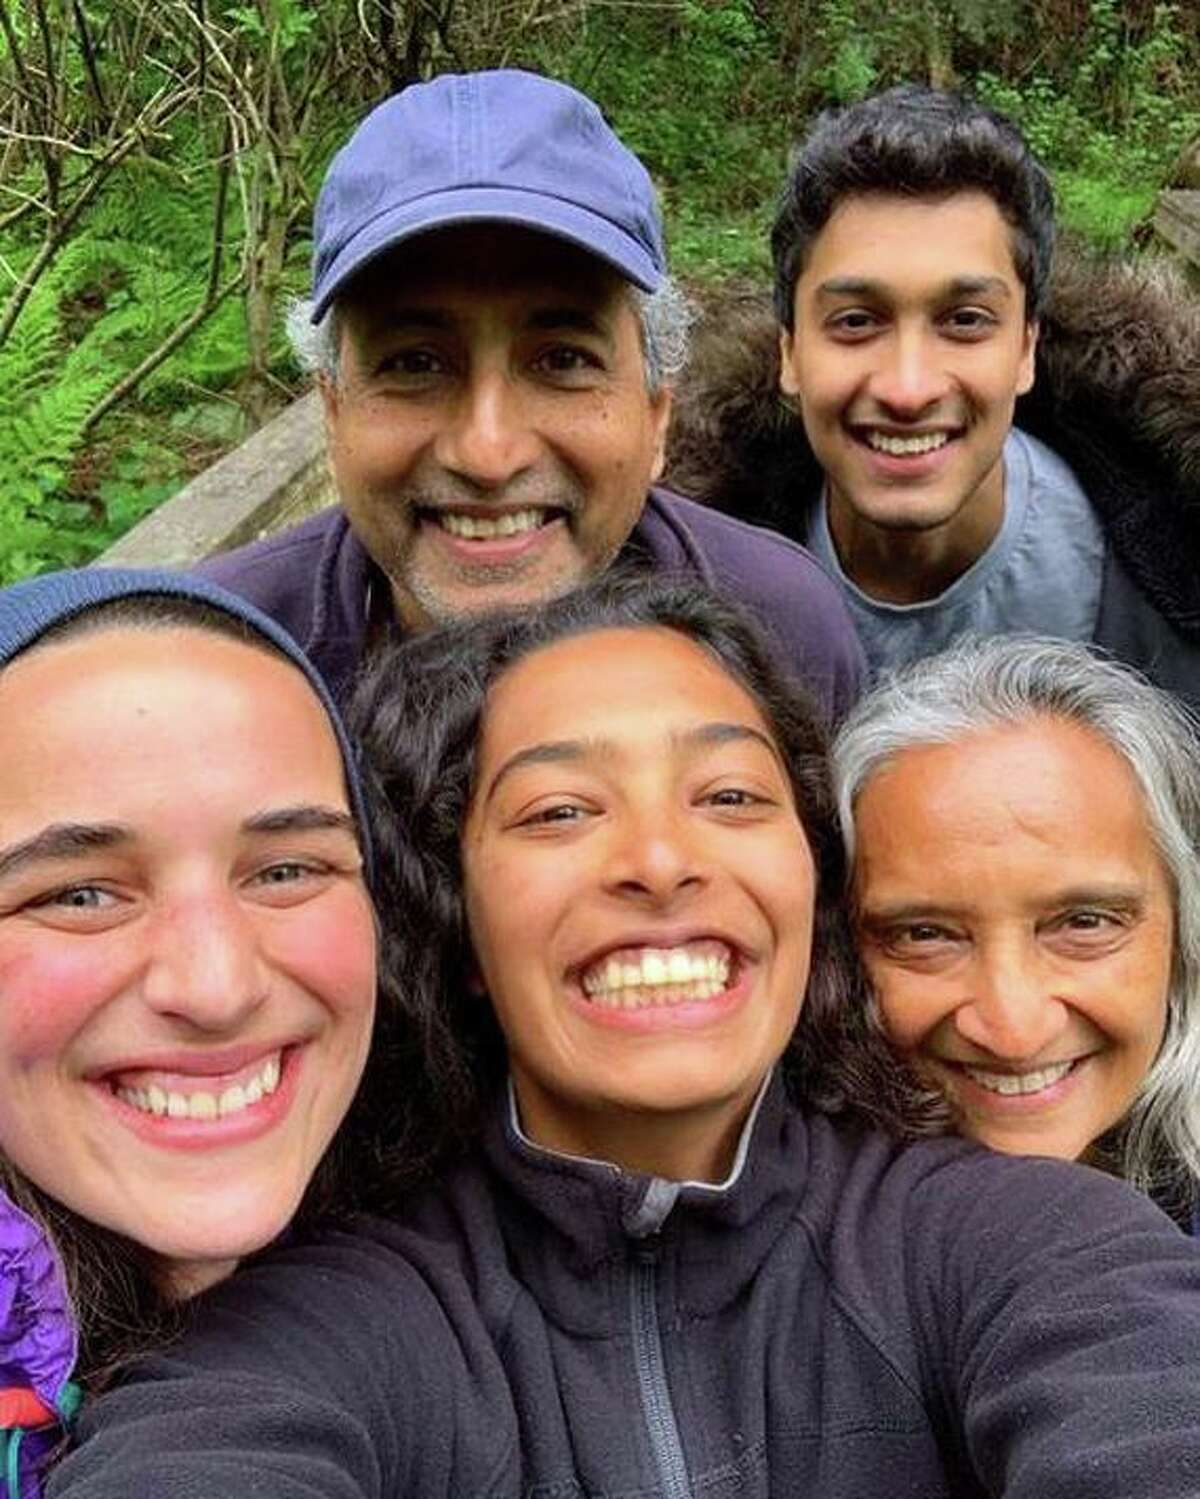 Clockwise from bottom center, Sana Javeri Kadri and her partner Rosie Russell with Kadri's father Rahul, brother Aman Javeri Kadri and mother Shimul Javeri in Mumbai, India in March 2020. Sana Javeri Kadri, CEO of the Oakland-based spice company Diaspora Co., is calling for increased public awareness and financial support for India during its devastating second wave in the COVID-19 crisis.